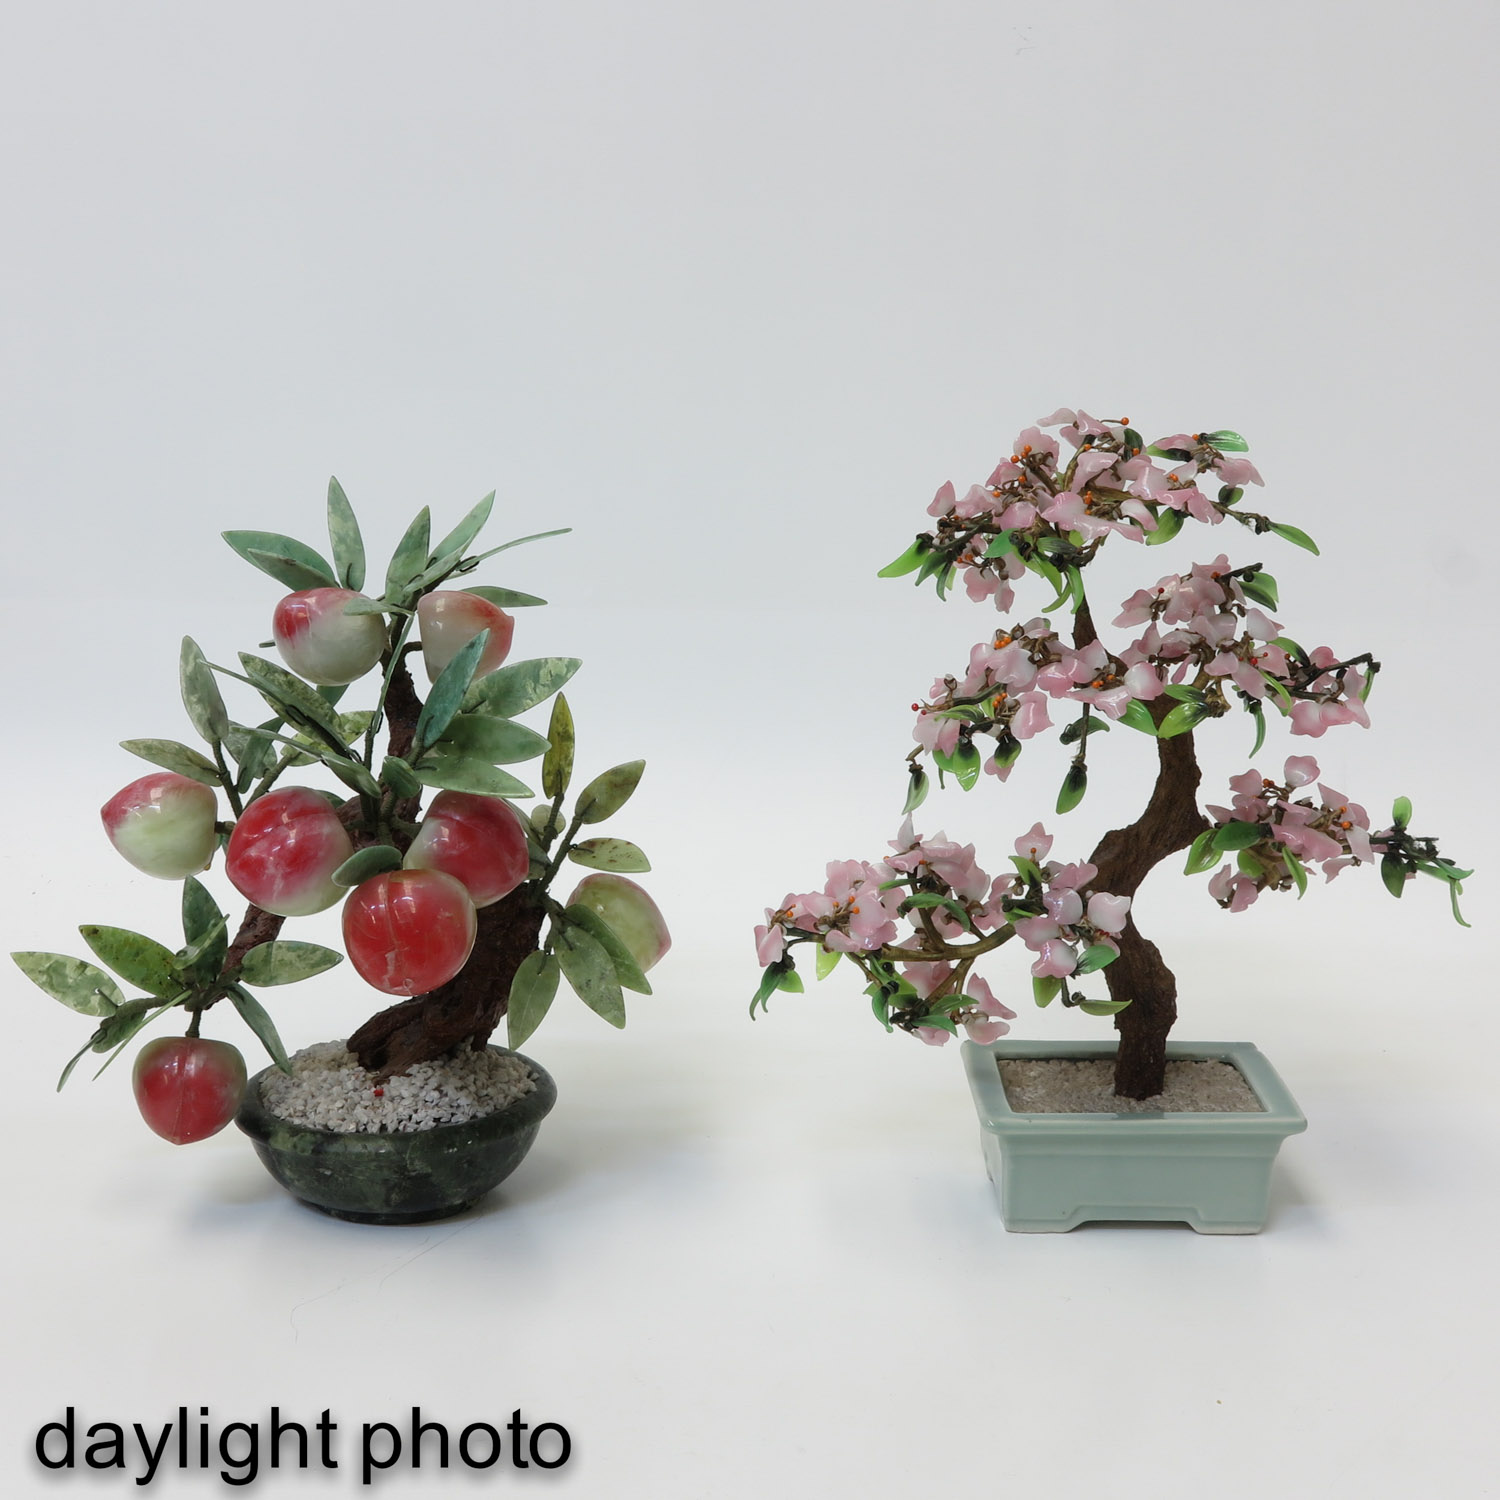 A Collection of Floral Arrangements - Image 6 of 10